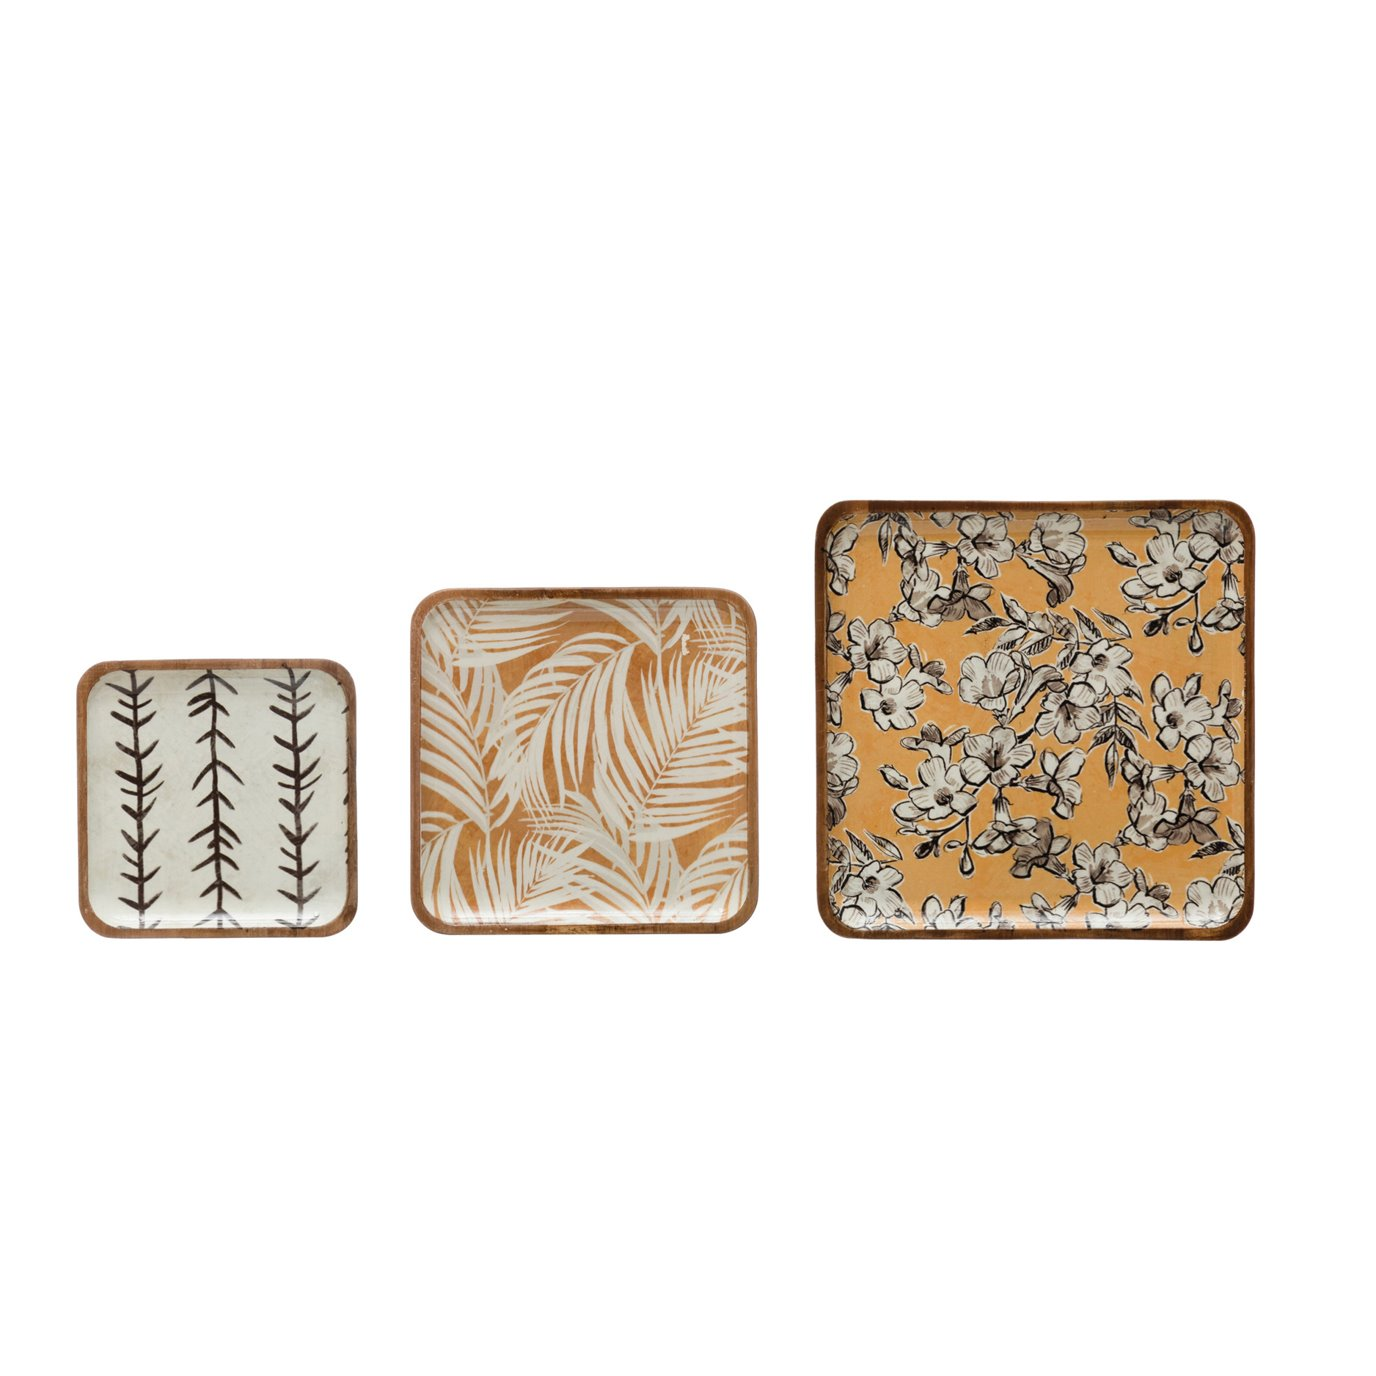 Square Enameled Acacia Wood Trays with Print, Set of 3 ©